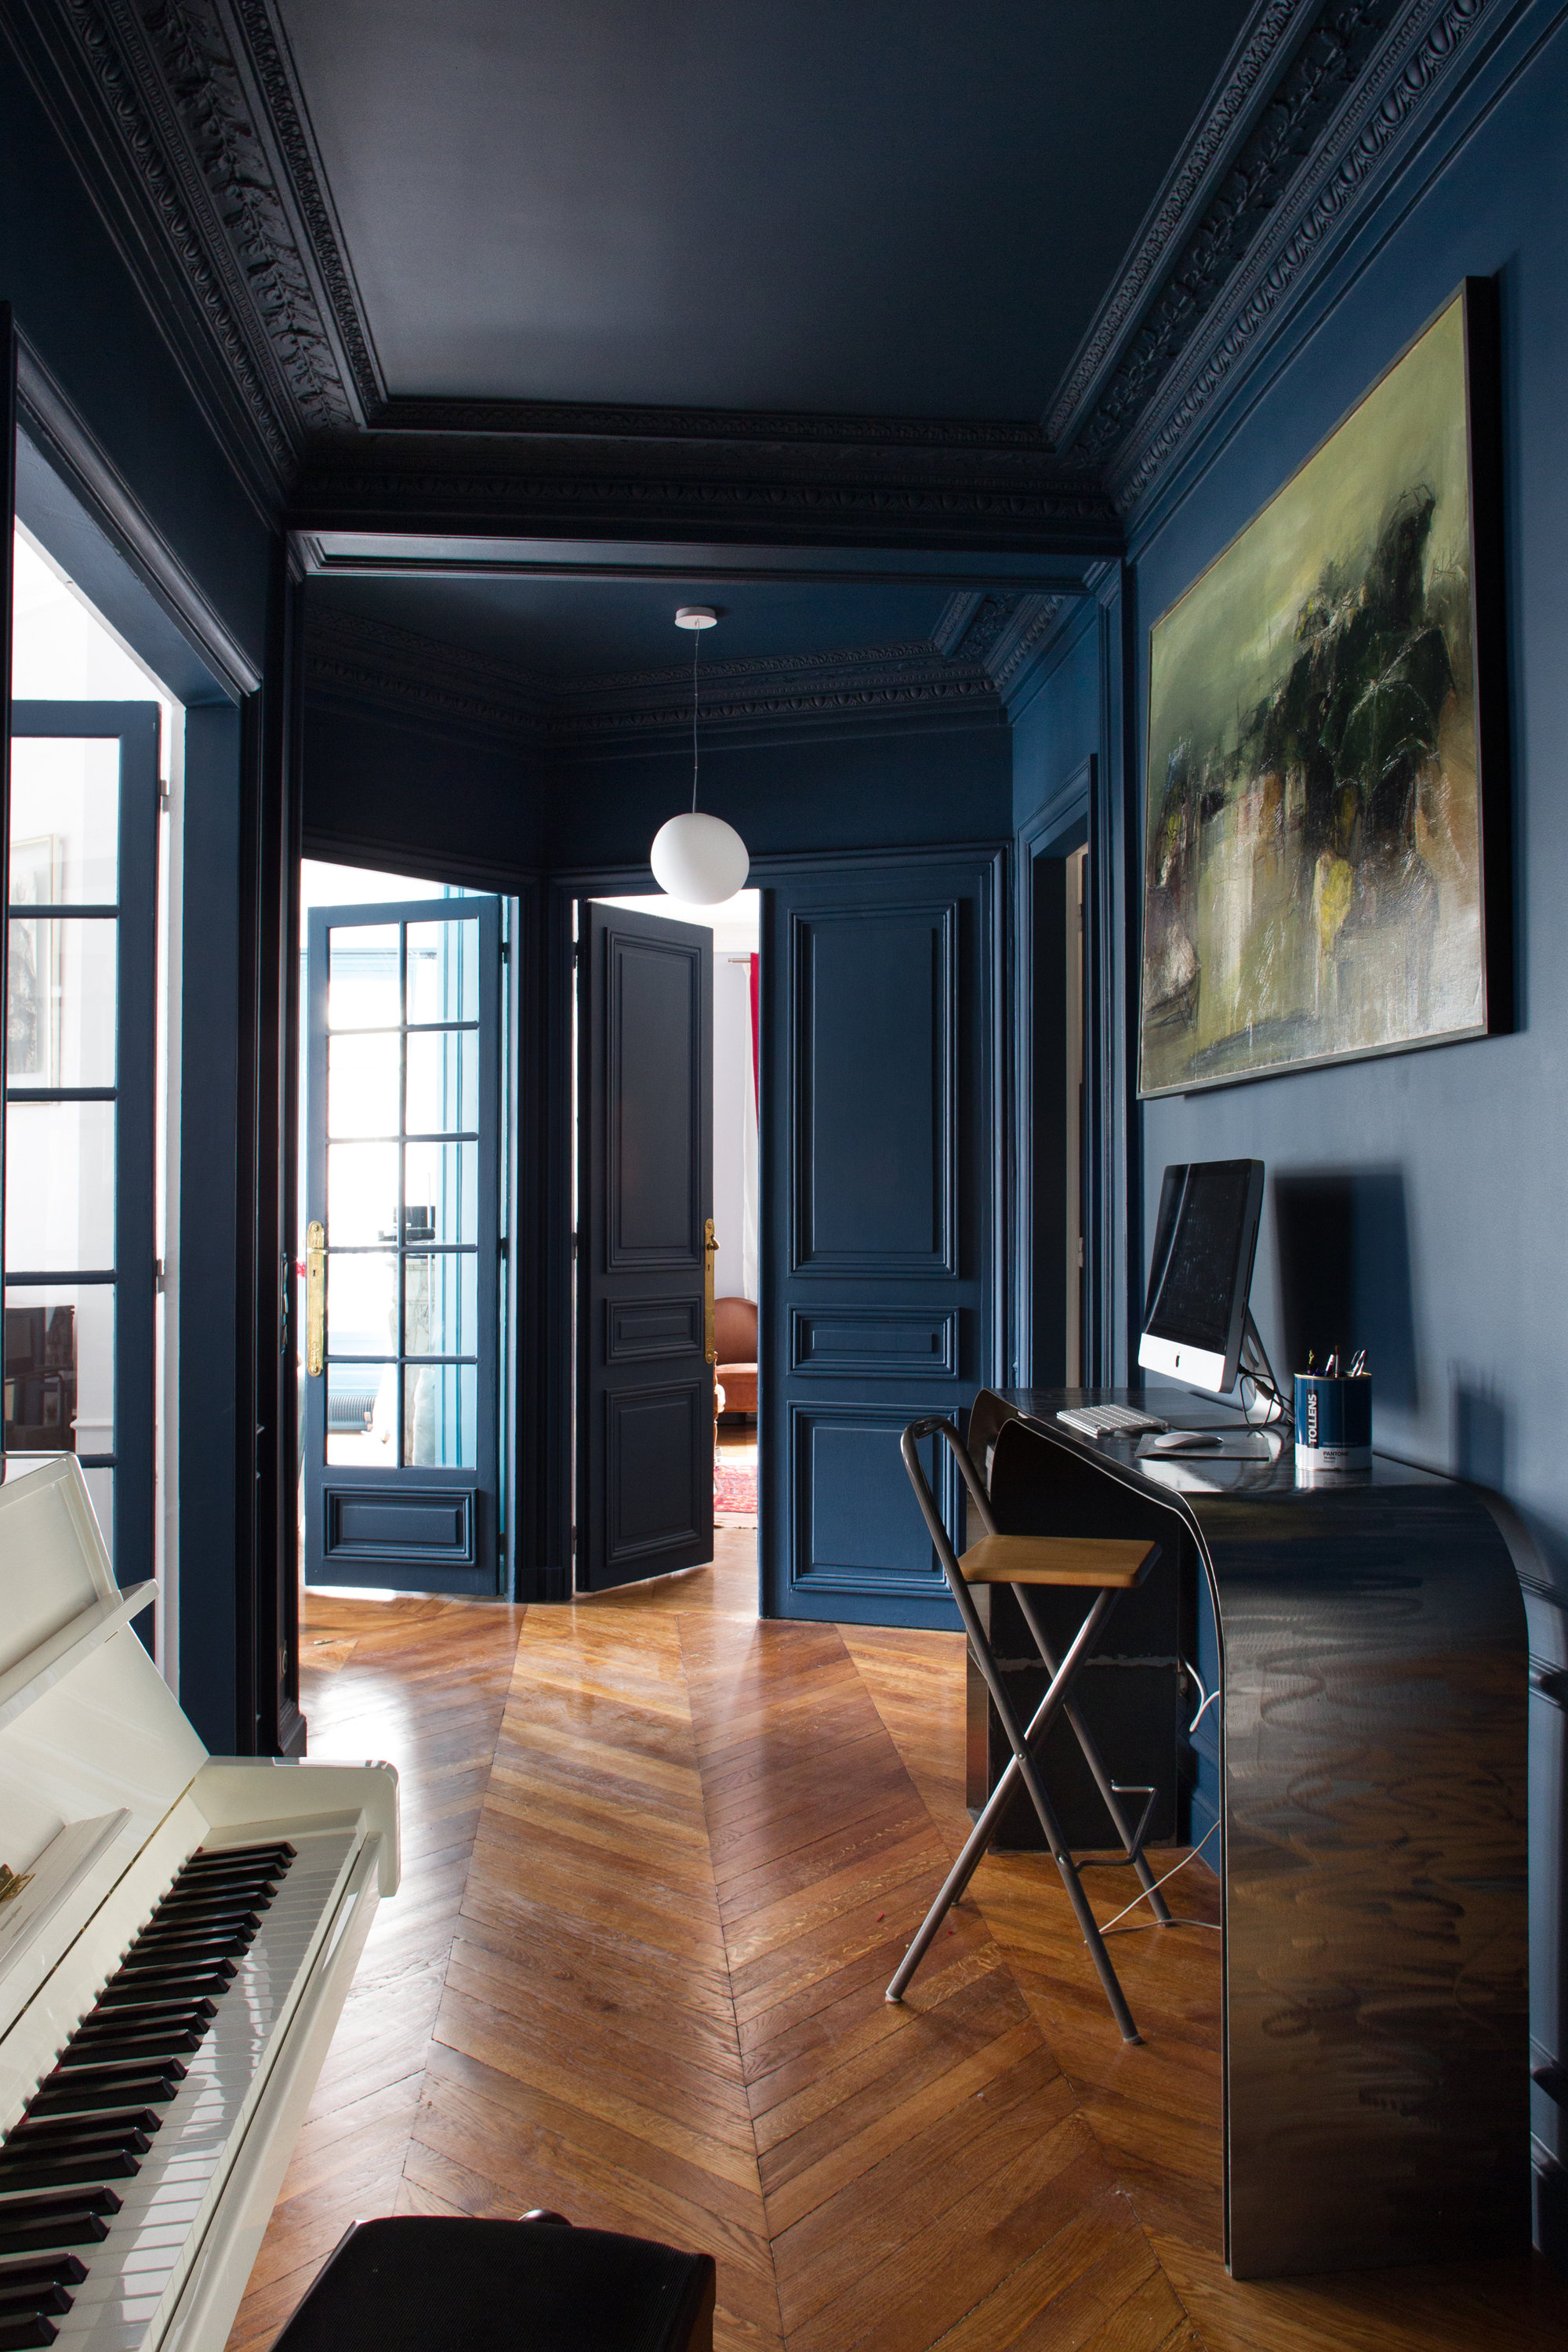 hall d entr e classique vintage contemporain bleu noir marron bois m tal inspiration style. Black Bedroom Furniture Sets. Home Design Ideas